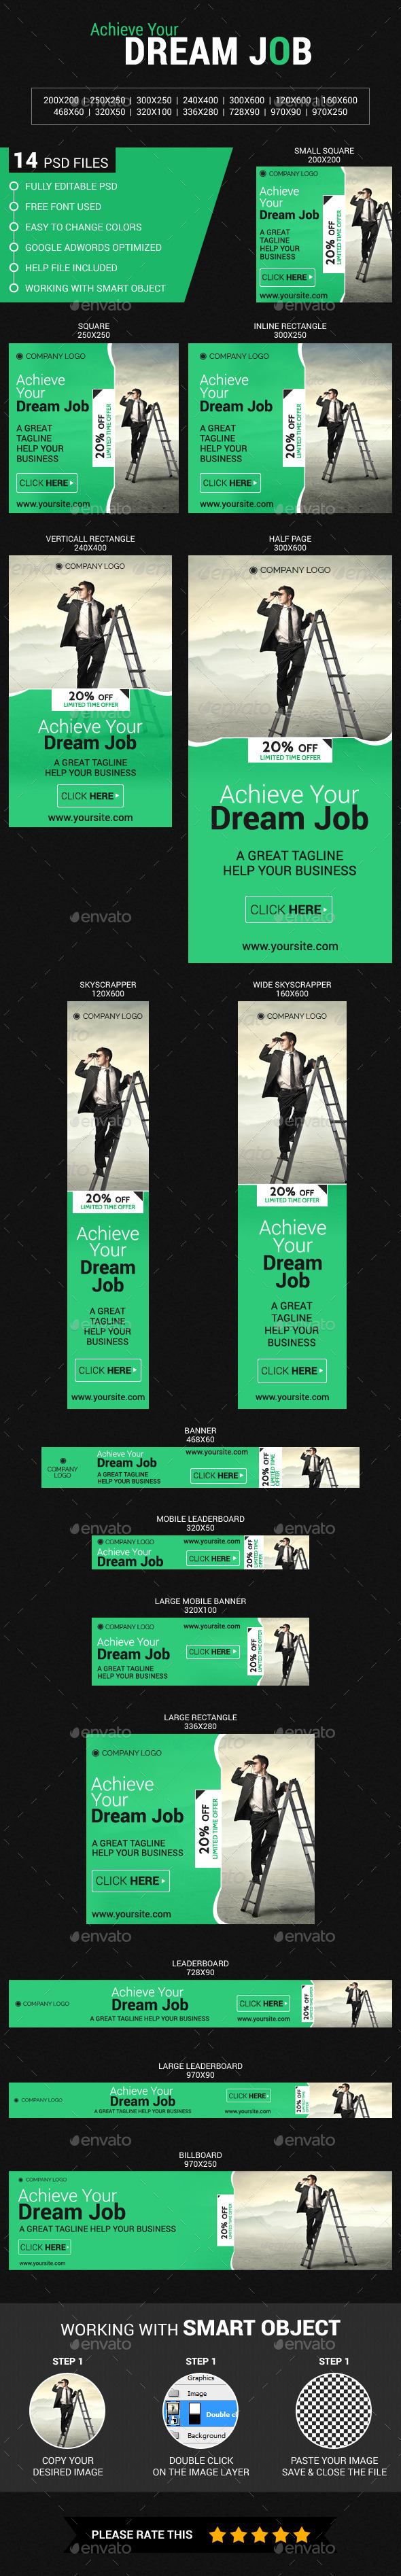 Job Search & Courses - Banners & Ads Web Elements